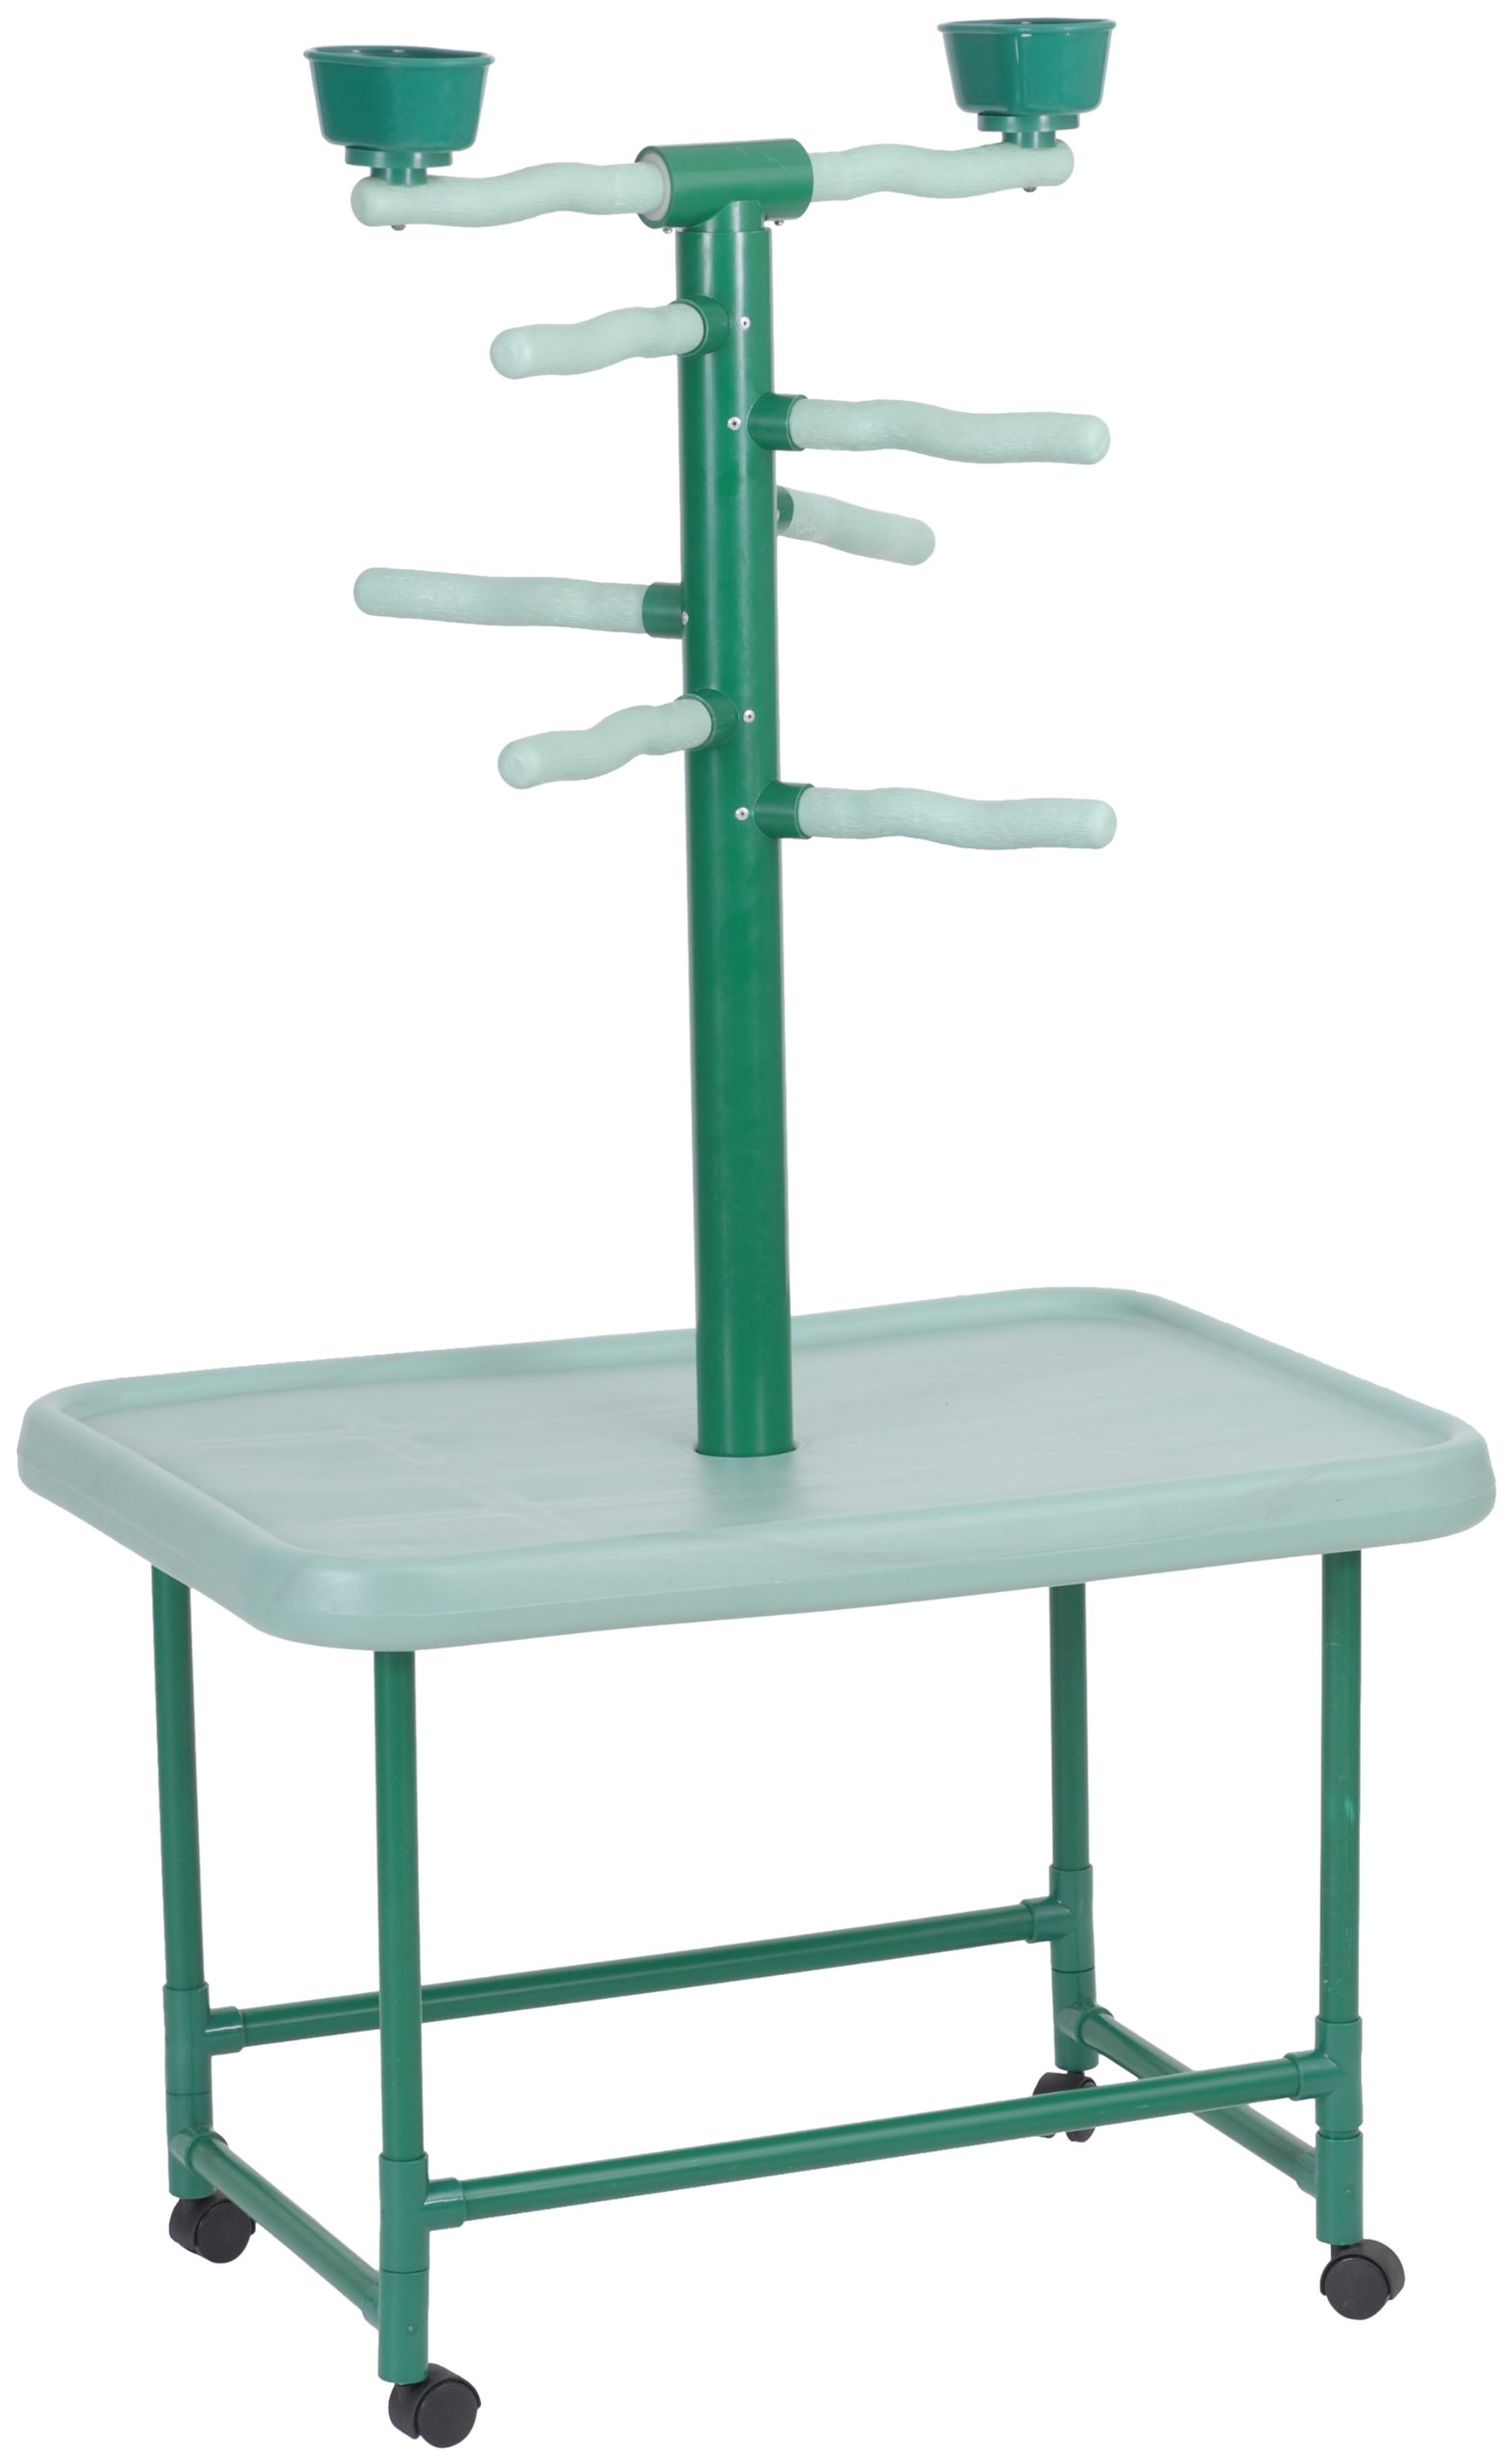 Acrobird, Medium Play Tower, 54-Inch H by 22-Foot D by 32-Inch L, Green